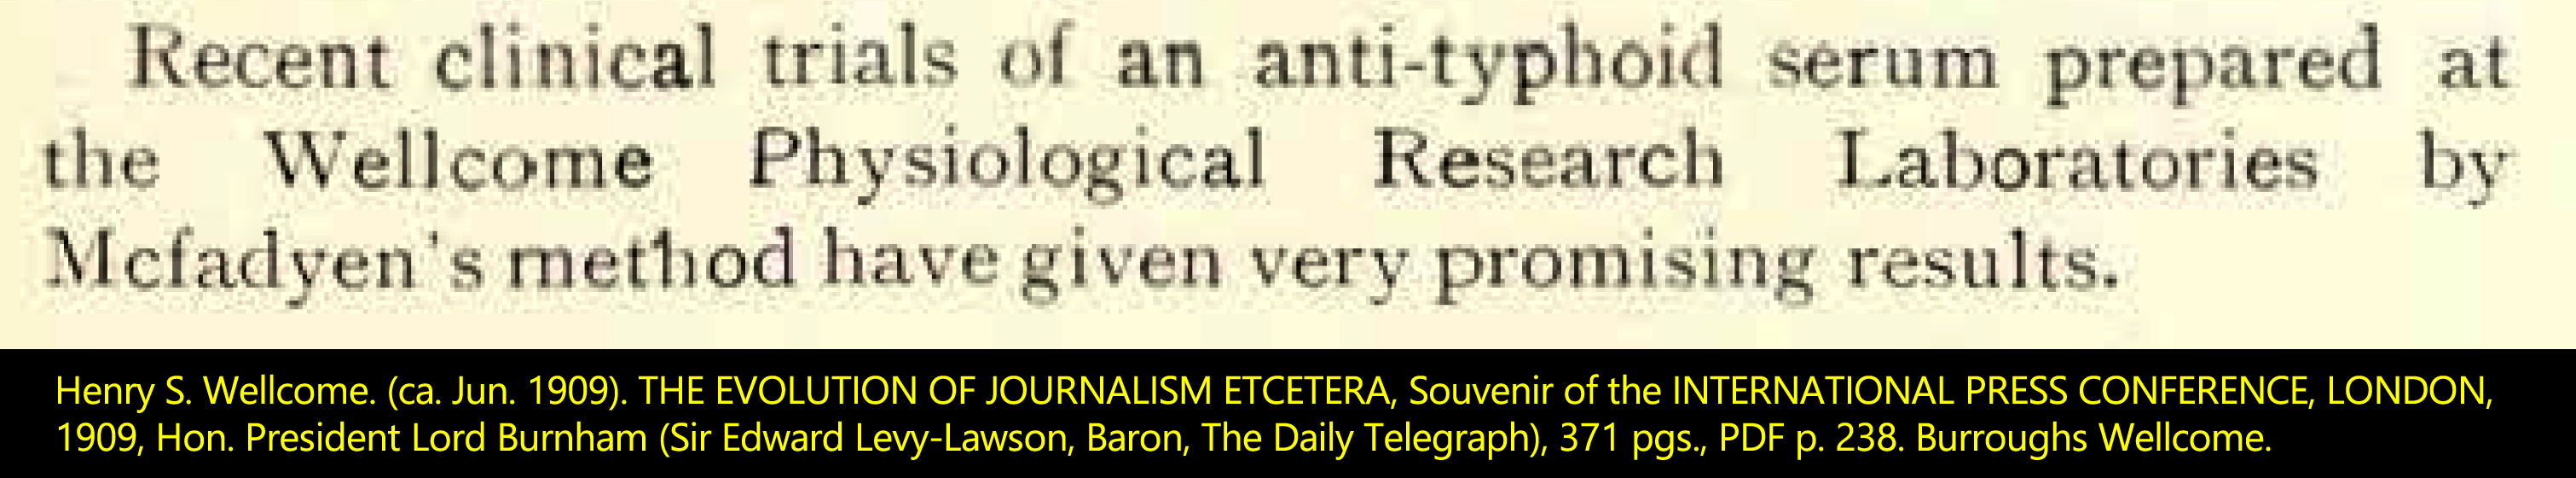 Henry S. Wellcome. (ca. Jun. 1909). THE EVOLUTION OF JOURNALISM ETCETERA, Souvenir of the INTERNATIONAL PRESS CONFERENCE, LONDON, 1909, Hon. President Lord Burnham (Sir Edward Levy-Lawson, Baron, The Daily Telegraph), 371 pgs., PDF p. 236. Burroughs Wellcome.